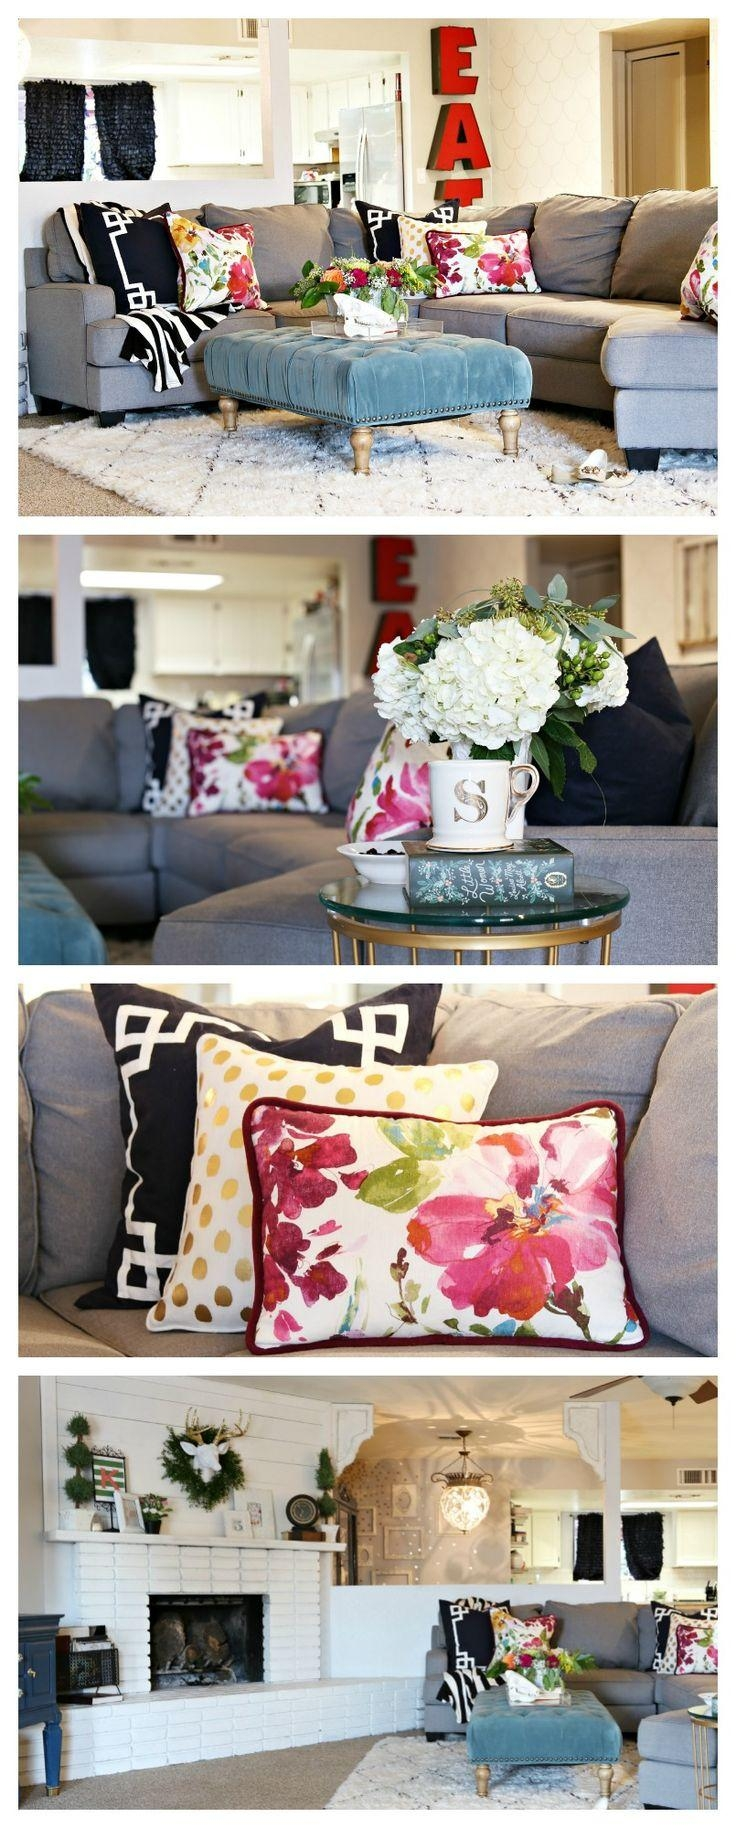 Best 25+ Floral Couch Ideas On Pinterest | Wall Murals Uk, Floral In Chintz Floral Sofas (Image 9 of 22)